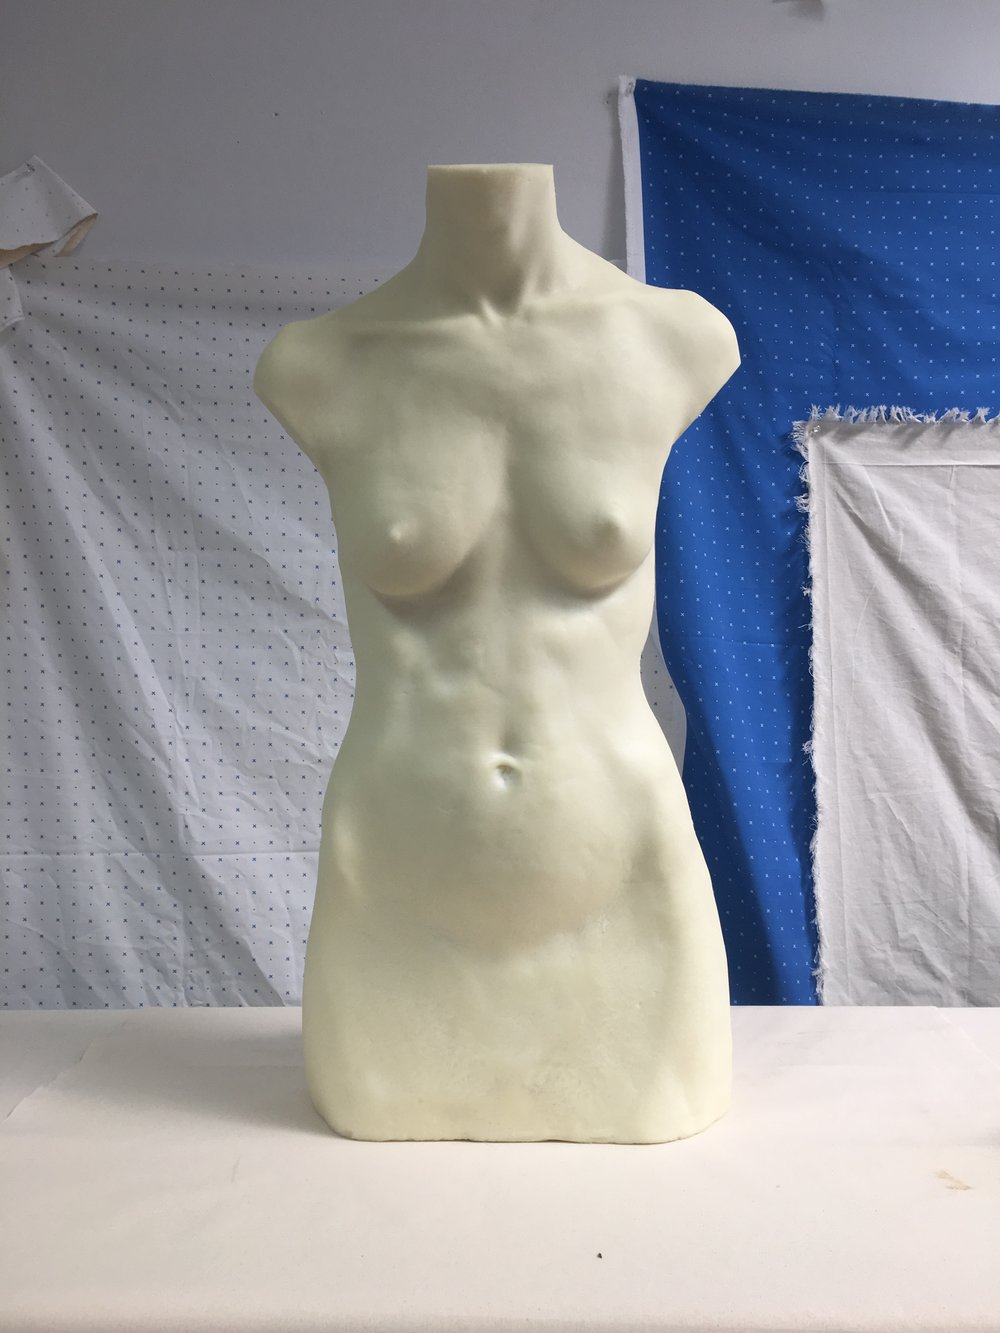 BodyCast_IMG_7319 copy.JPG